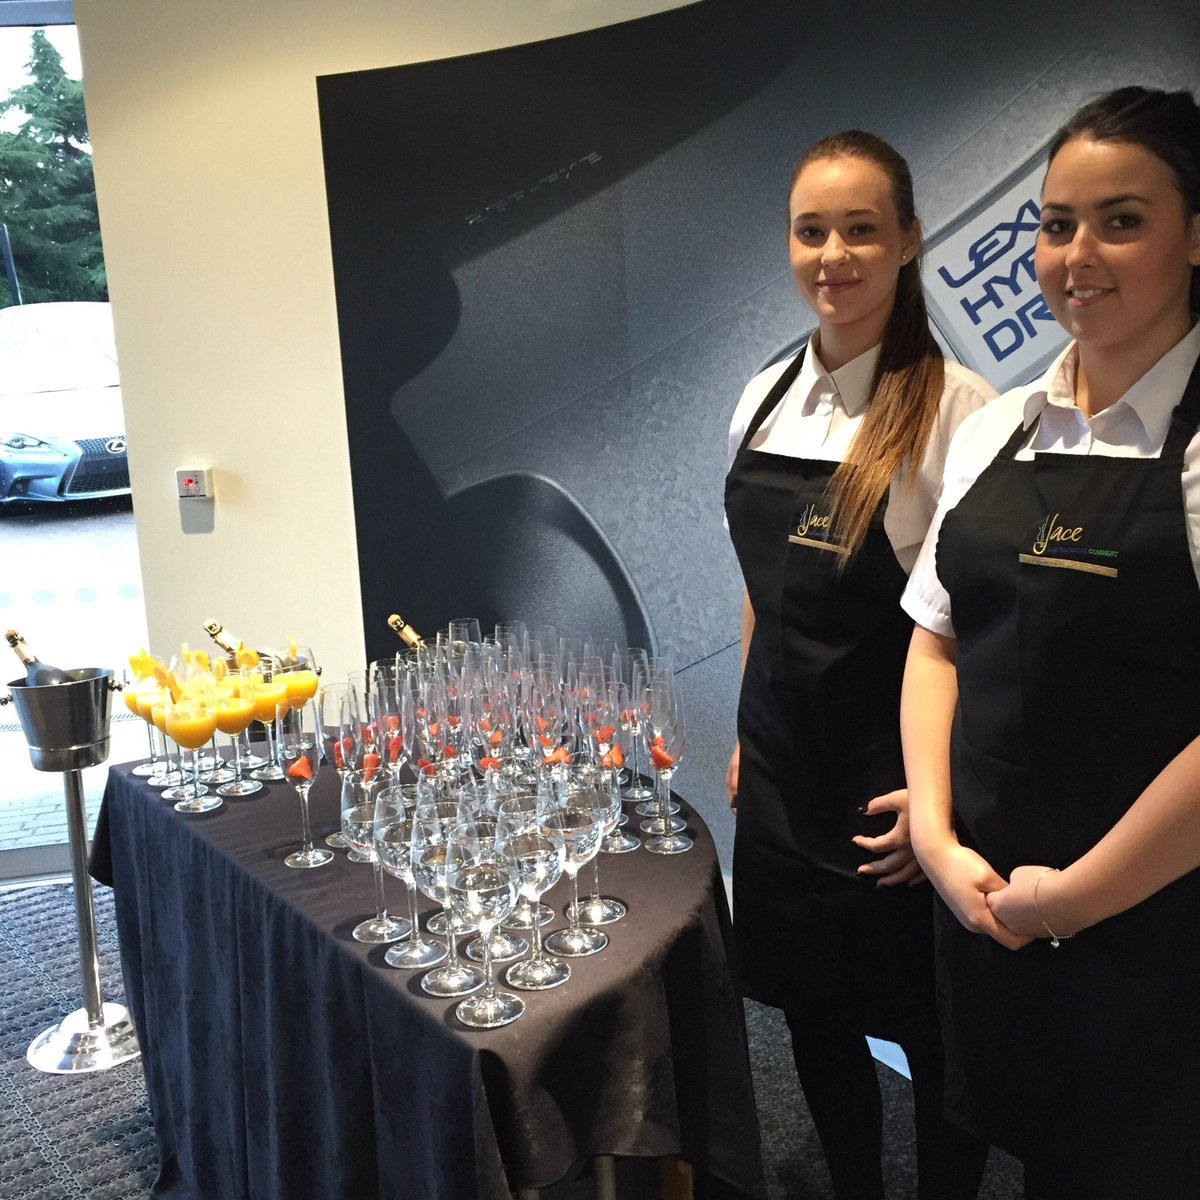 new car launches eventsJACECatering on Twitter Our lovely catering staff serving drinks